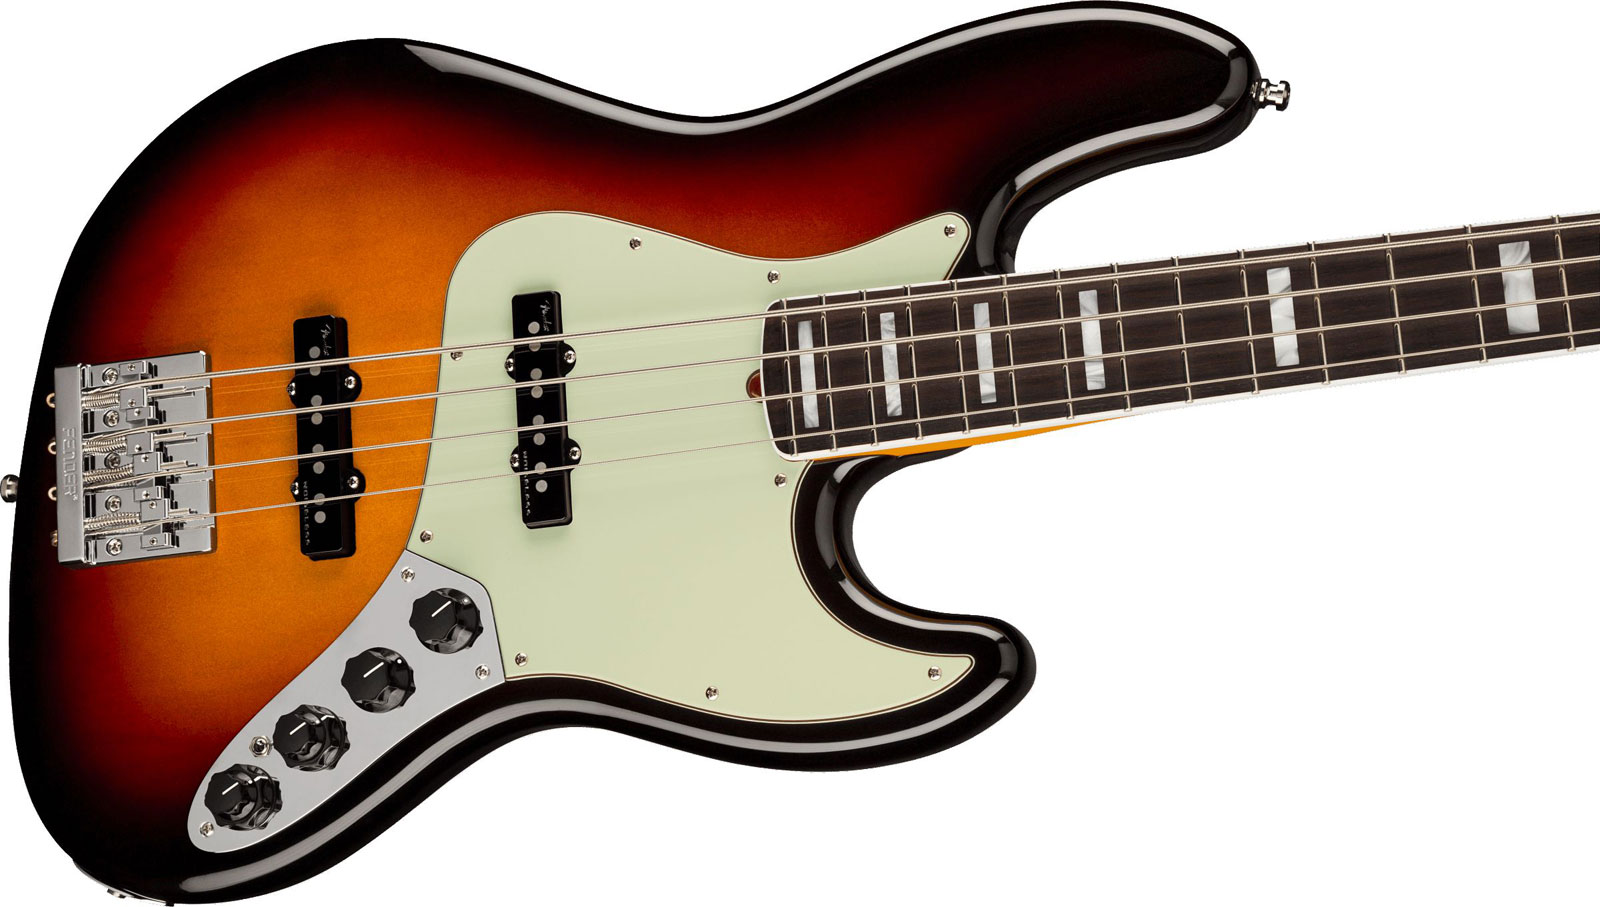 AMERICAN ULTRA JAZZ BASS RW ULTRABURST